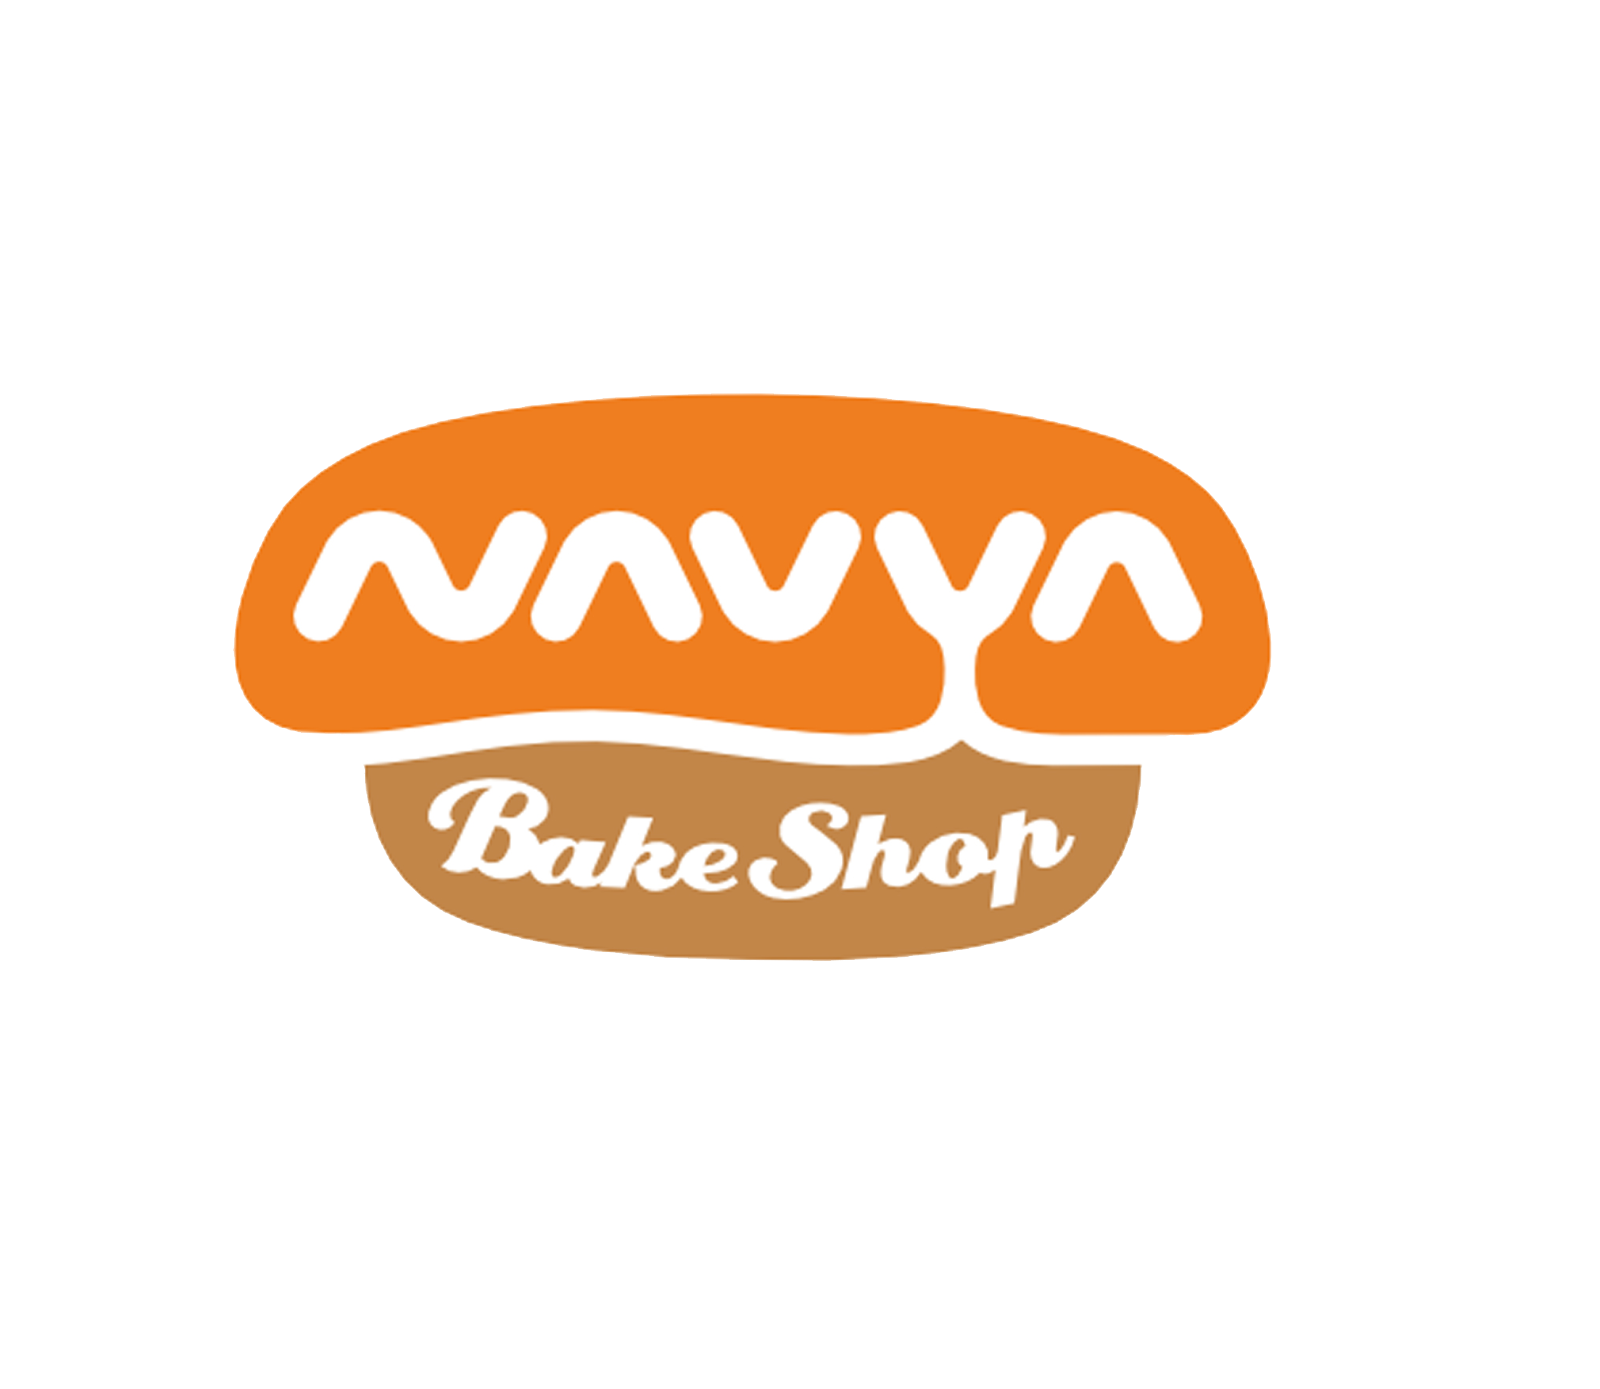 Navya Bake Shop - Edappally - Kochi Image